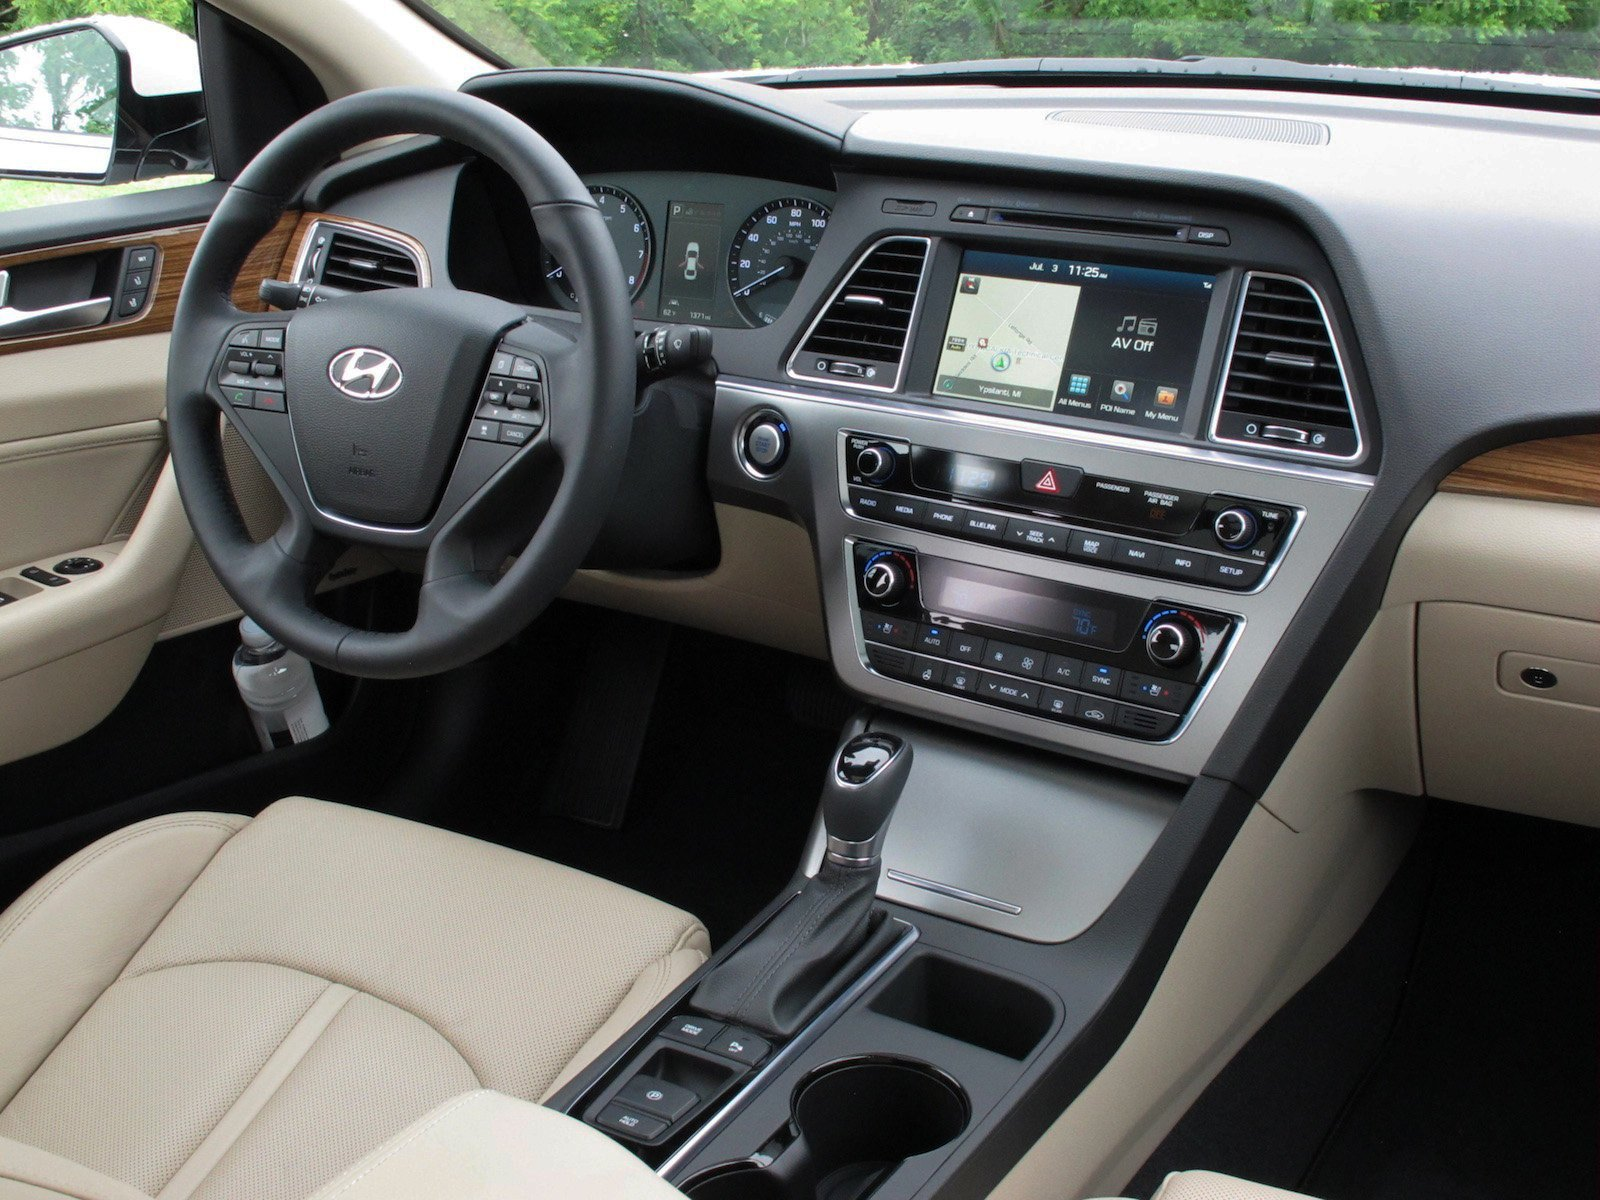 Review 2015 hyundai sonata canadian auto review - 2015 hyundai sonata interior pictures ...